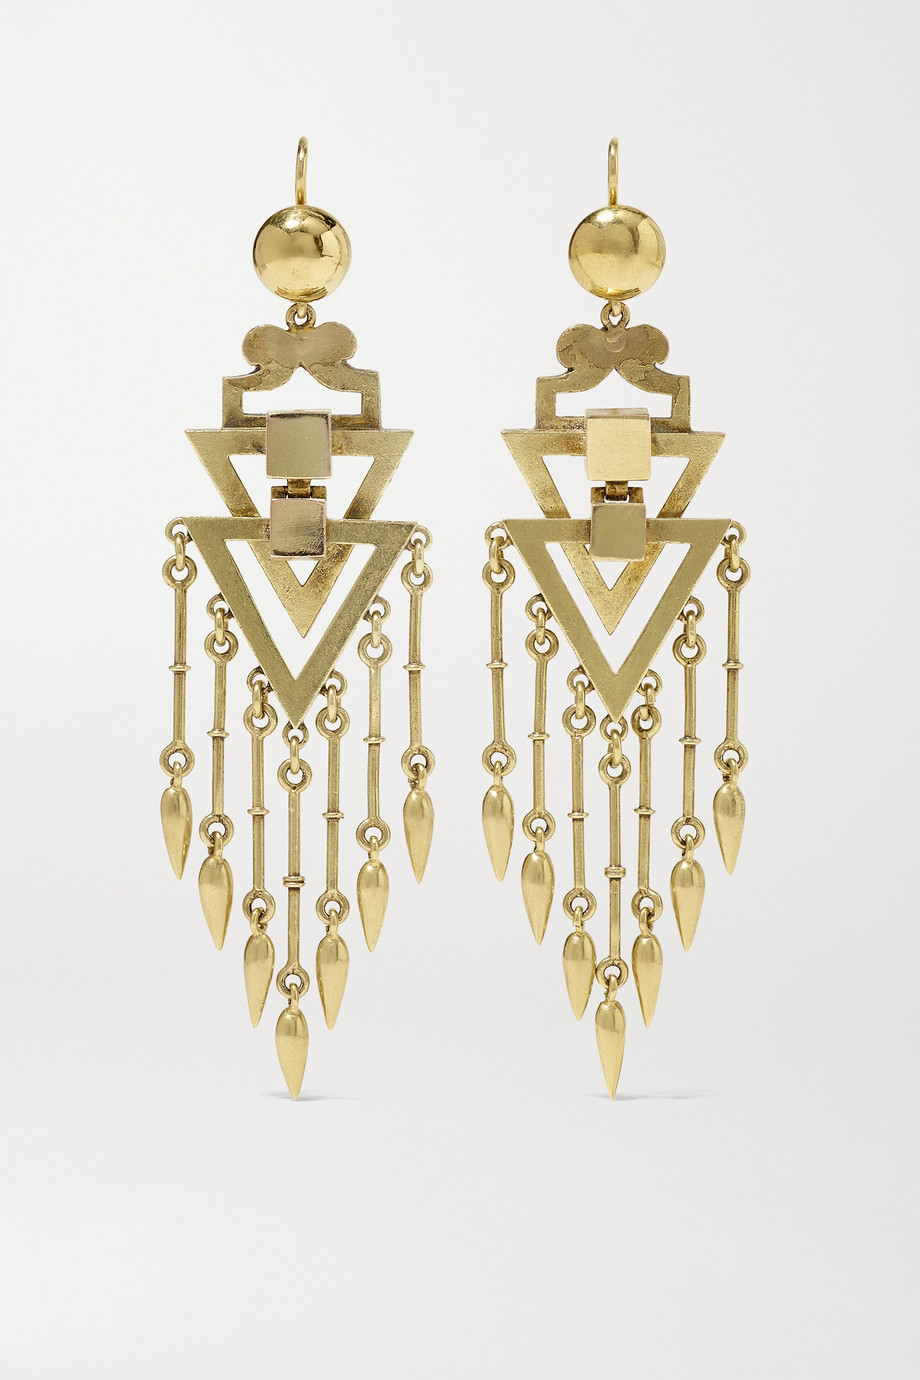 FRED LEIGHTON Victorian 14-karat gold earrings